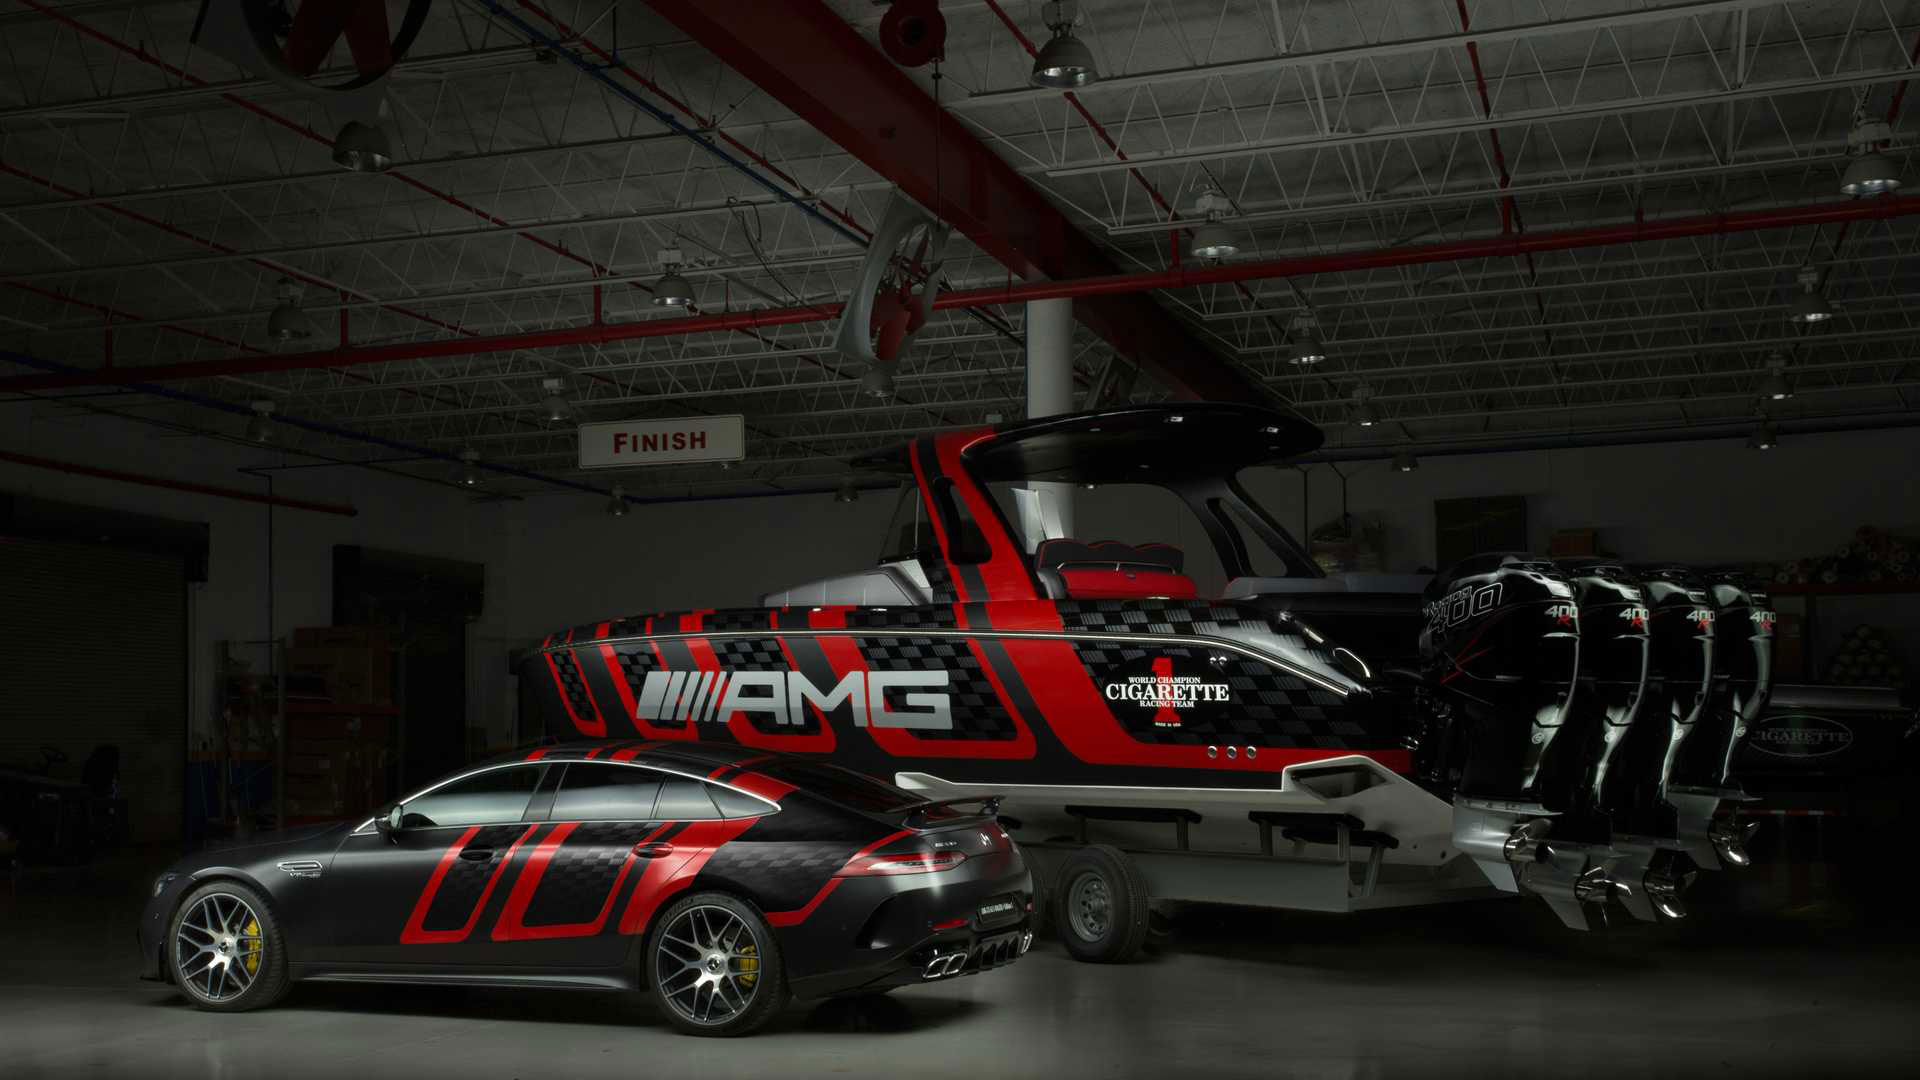 cigarette-racing-41-amg-carbon-edition